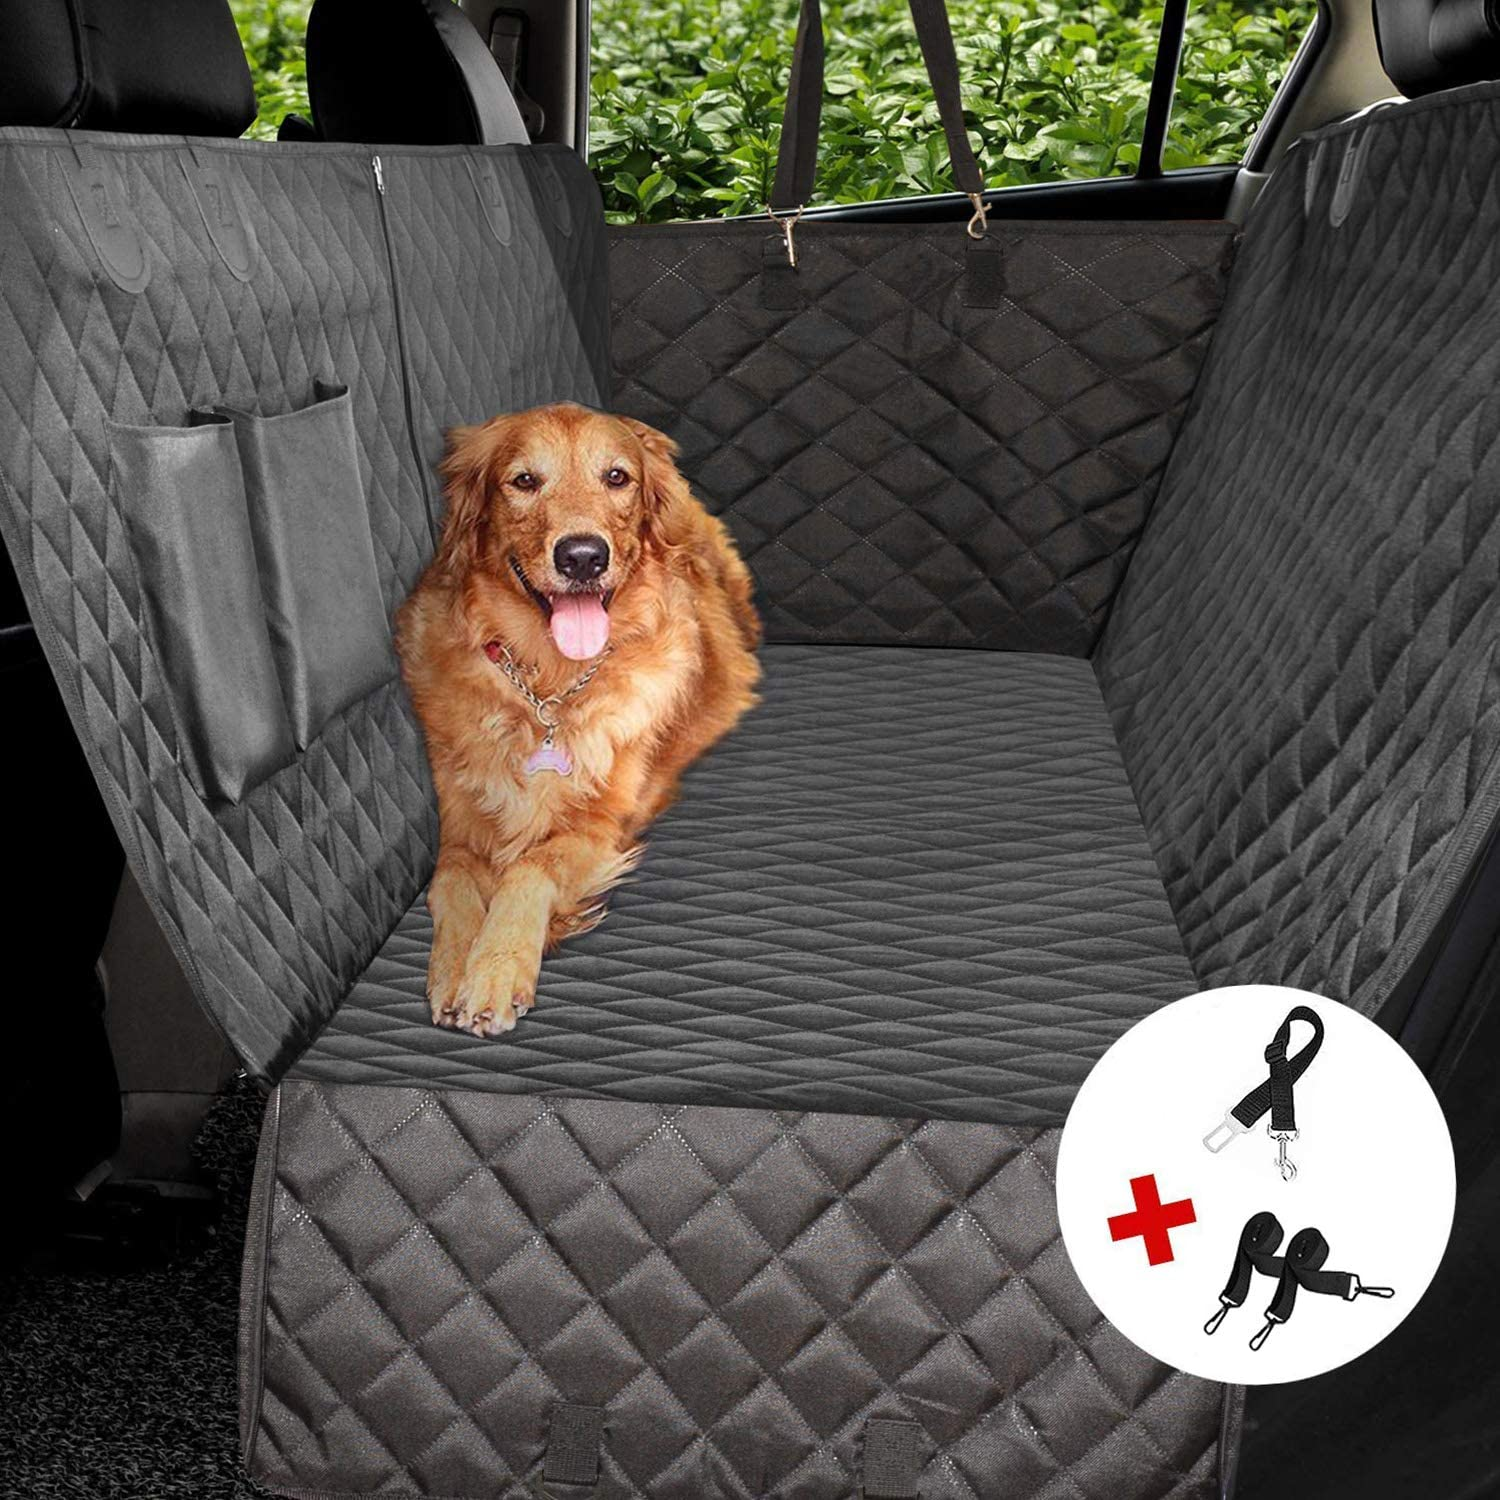 YIHATA Dog Car Seat Cover Seats Covers 100 Waterproof with Side Flaps for Pets, Scratch Proof, Nonslip Backing Hammock, Dog Seat Belts Storage Pocket, Durable Pet Seat Covers for Cars Trucks SUV.